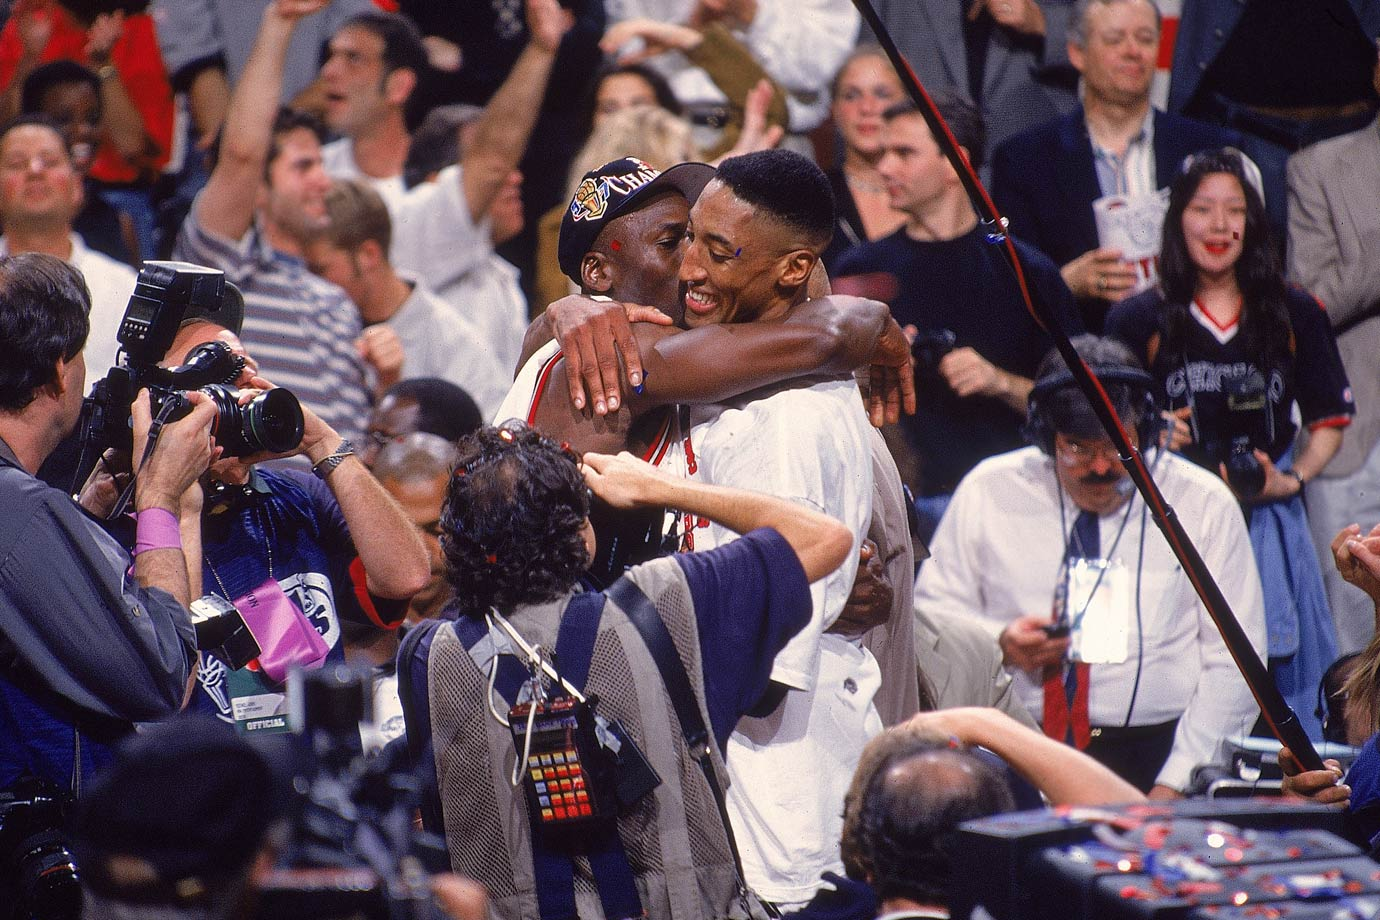 June 13, 1997 — NBA Finals, Game 6